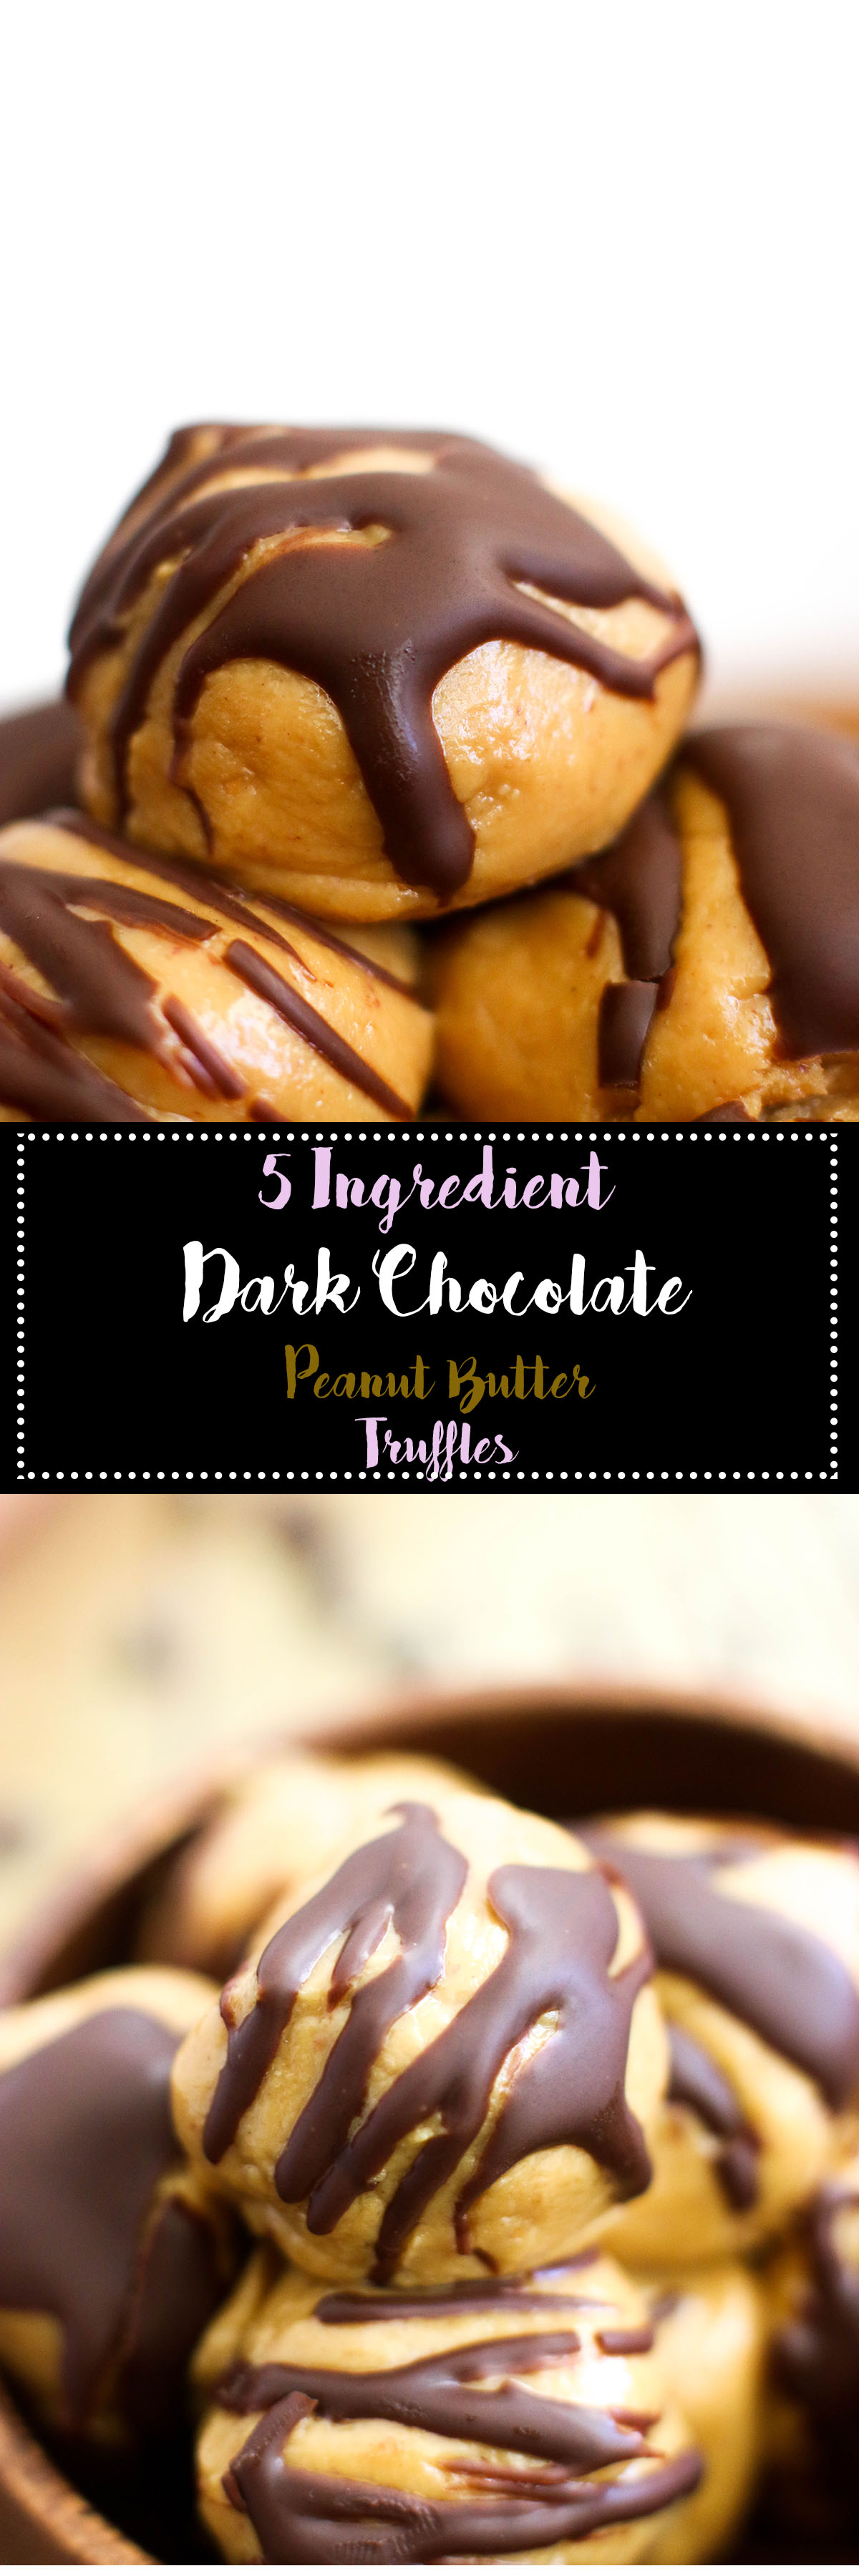 These 5 ingredient dark chocolate peanut butter truffles are vegan, gluten free, & absolutely delicious! They're naturally sweet and make for a great no-bake, healthier dessert.